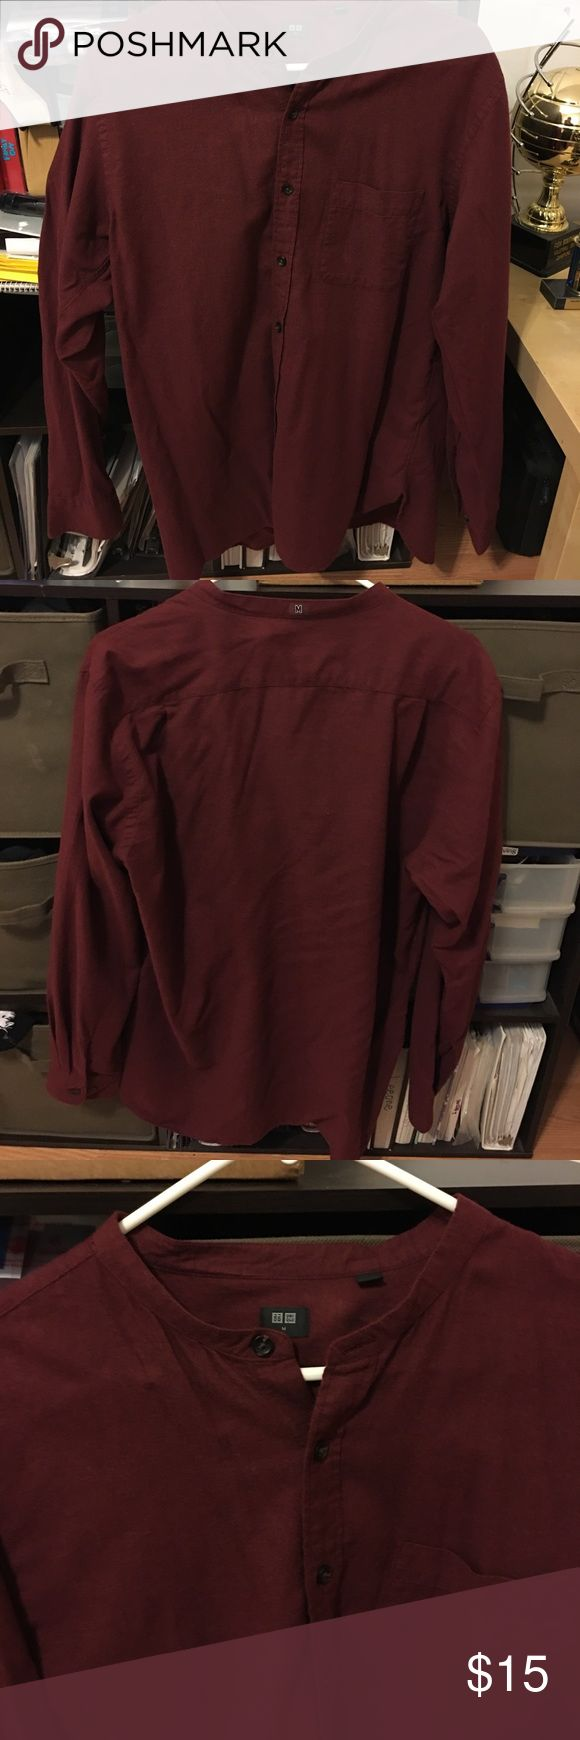 Uniqlo long sleeves polo shirt Brand new never worn men maroon long sleeve polo shirt. In great condition. Does not have a collar Uniqlo Shirts Polos